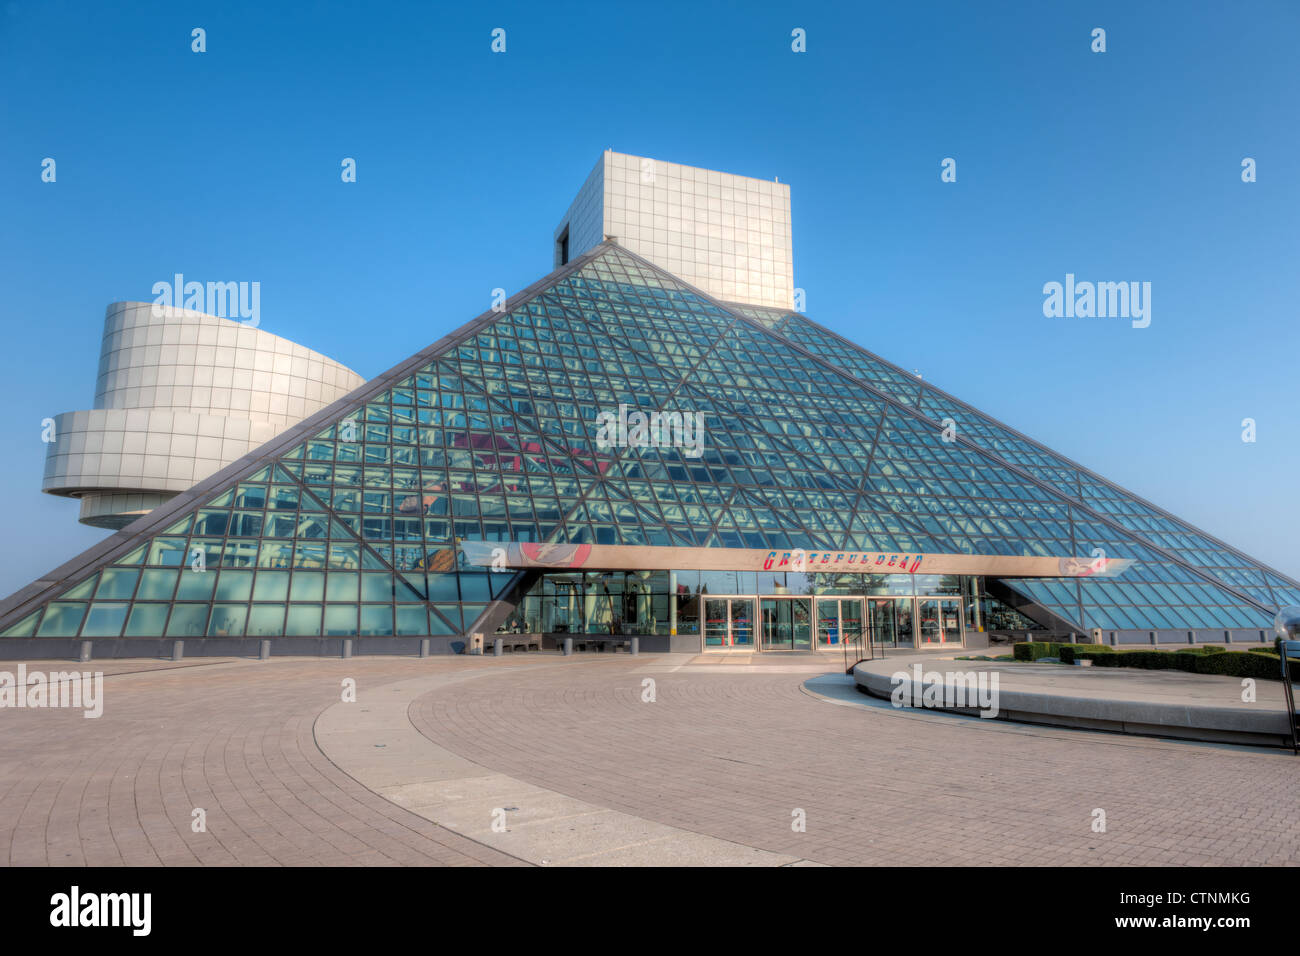 The Rock and Roll Hall of Fame in Cleveland, Ohio. - Stock Image